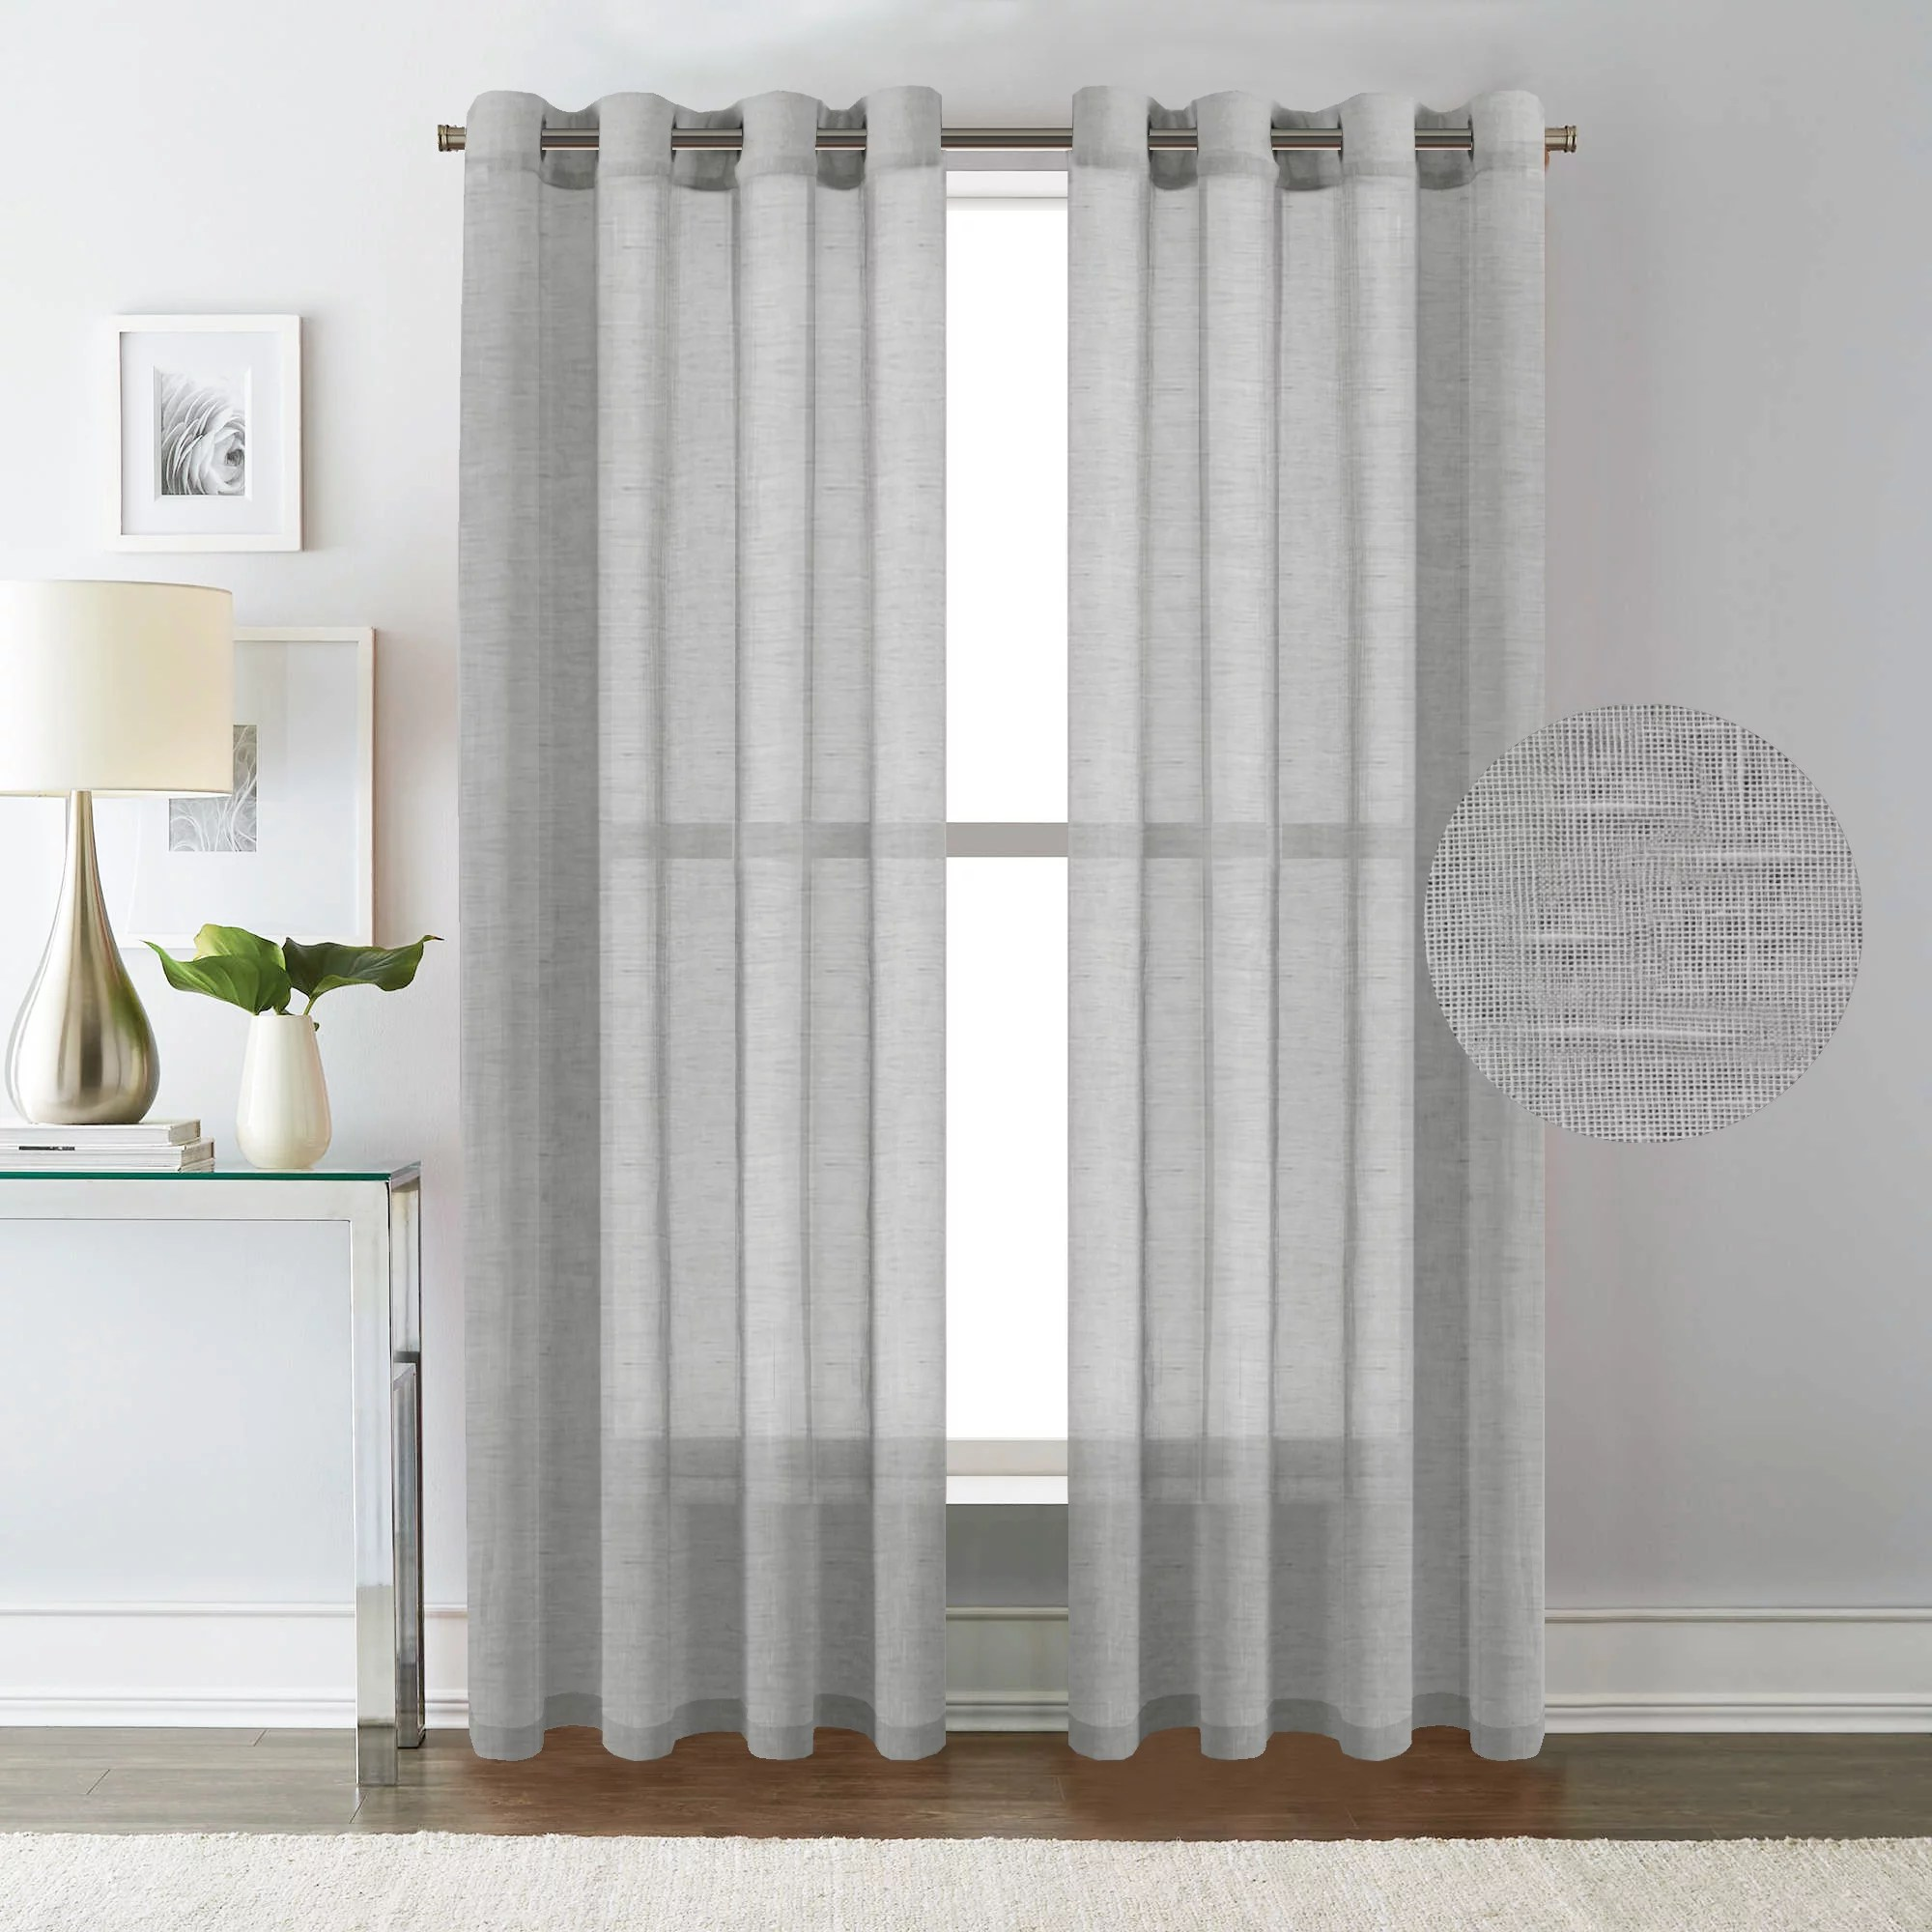 Privacy Curtain For Bedroom H Versailtex Elegant Natural Linen Sheer Curtains For Bedroom Privacy Protection Nickel Grommet Window Panels Drapes Set Of 2 52x84 Inch Dove